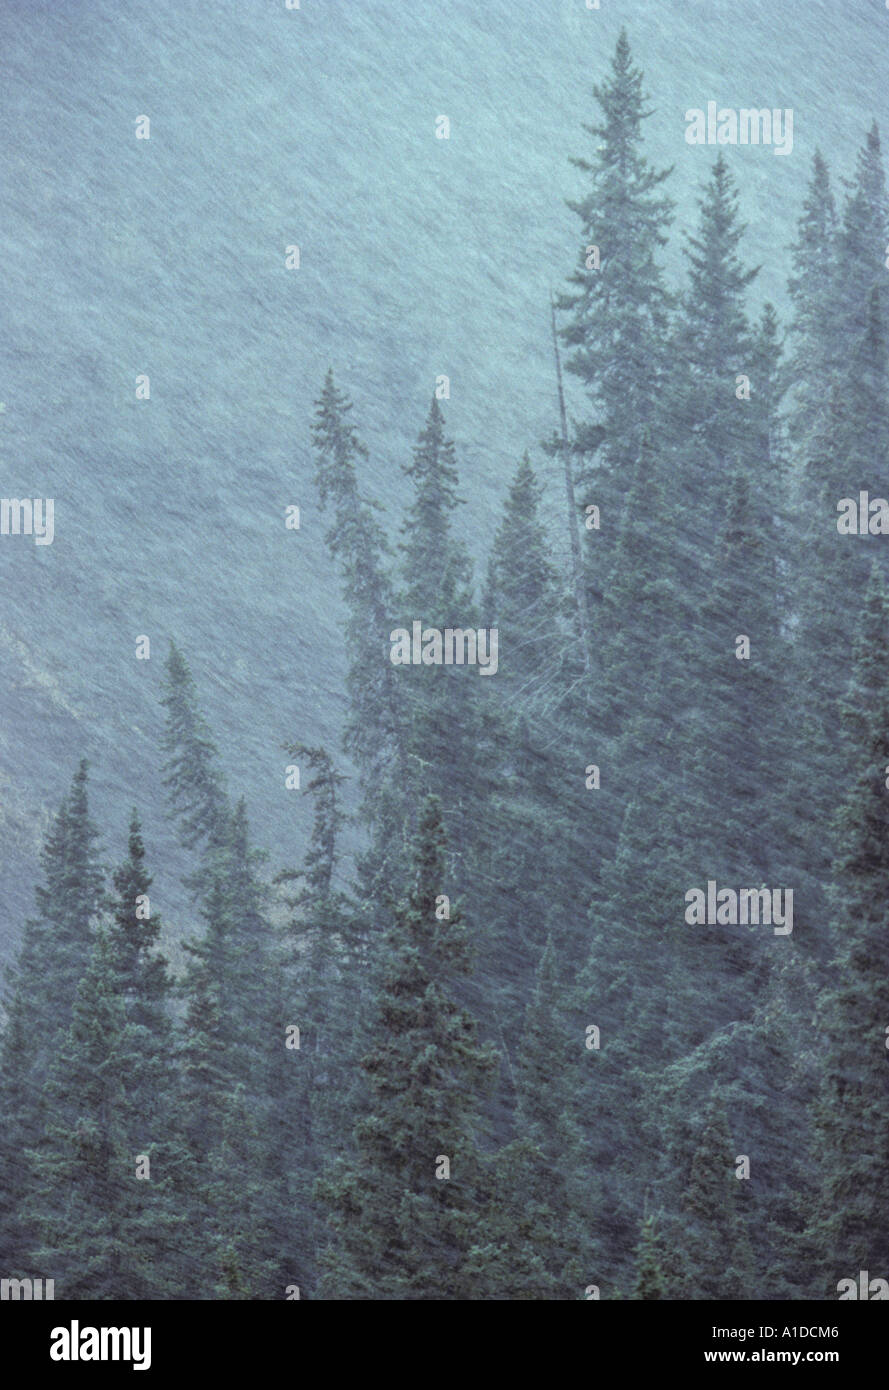 White spruce evergreen trees in a snowstorm - Stock Image